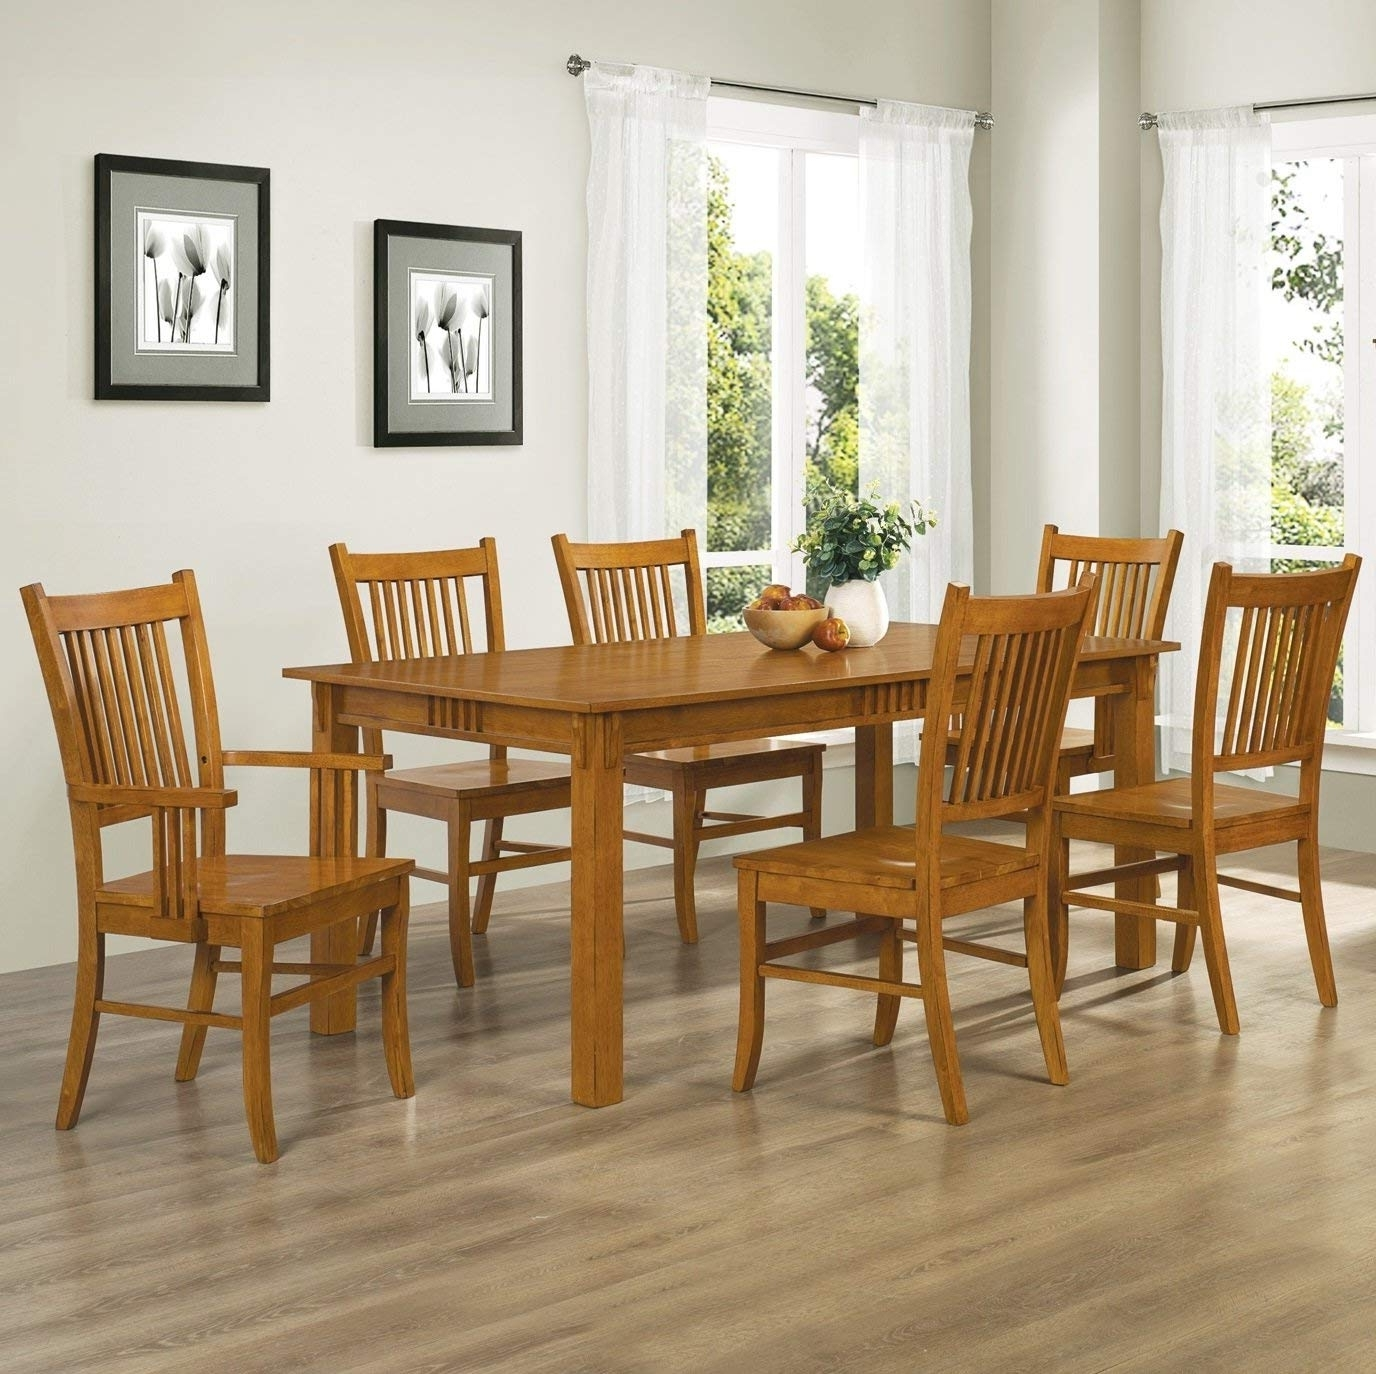 Well Known Craftsman 7 Piece Rectangle Extension Dining Sets With Uph Side Chairs For Amazon – Coaster Home Furnishings 7 Piece Mission Style Solid (View 13 of 25)